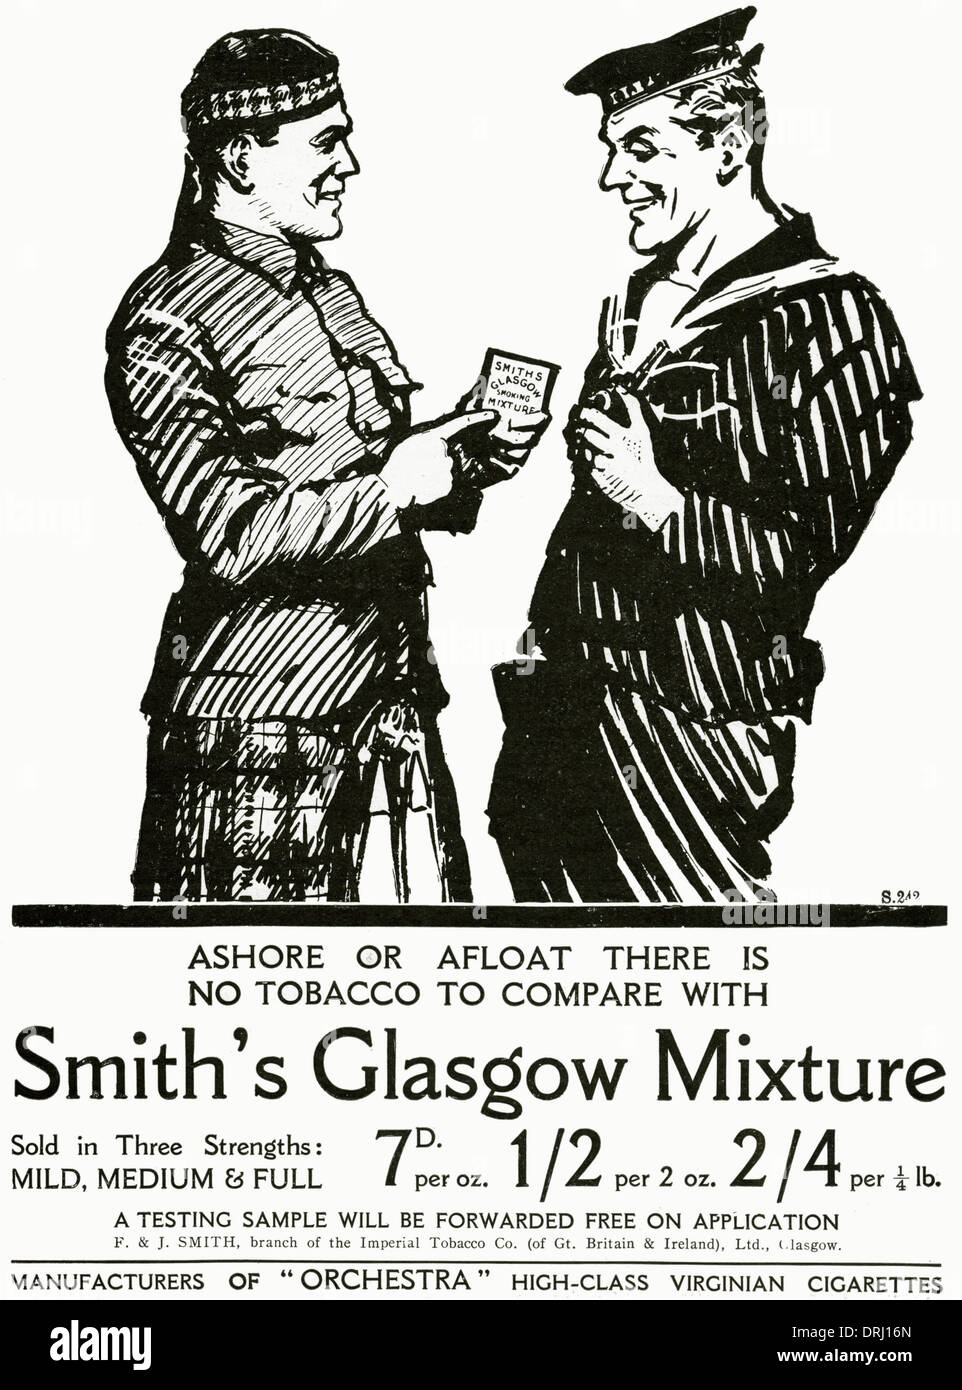 Advert for Smith's Glasgow Mixture Tobacco 1915 - Stock Image